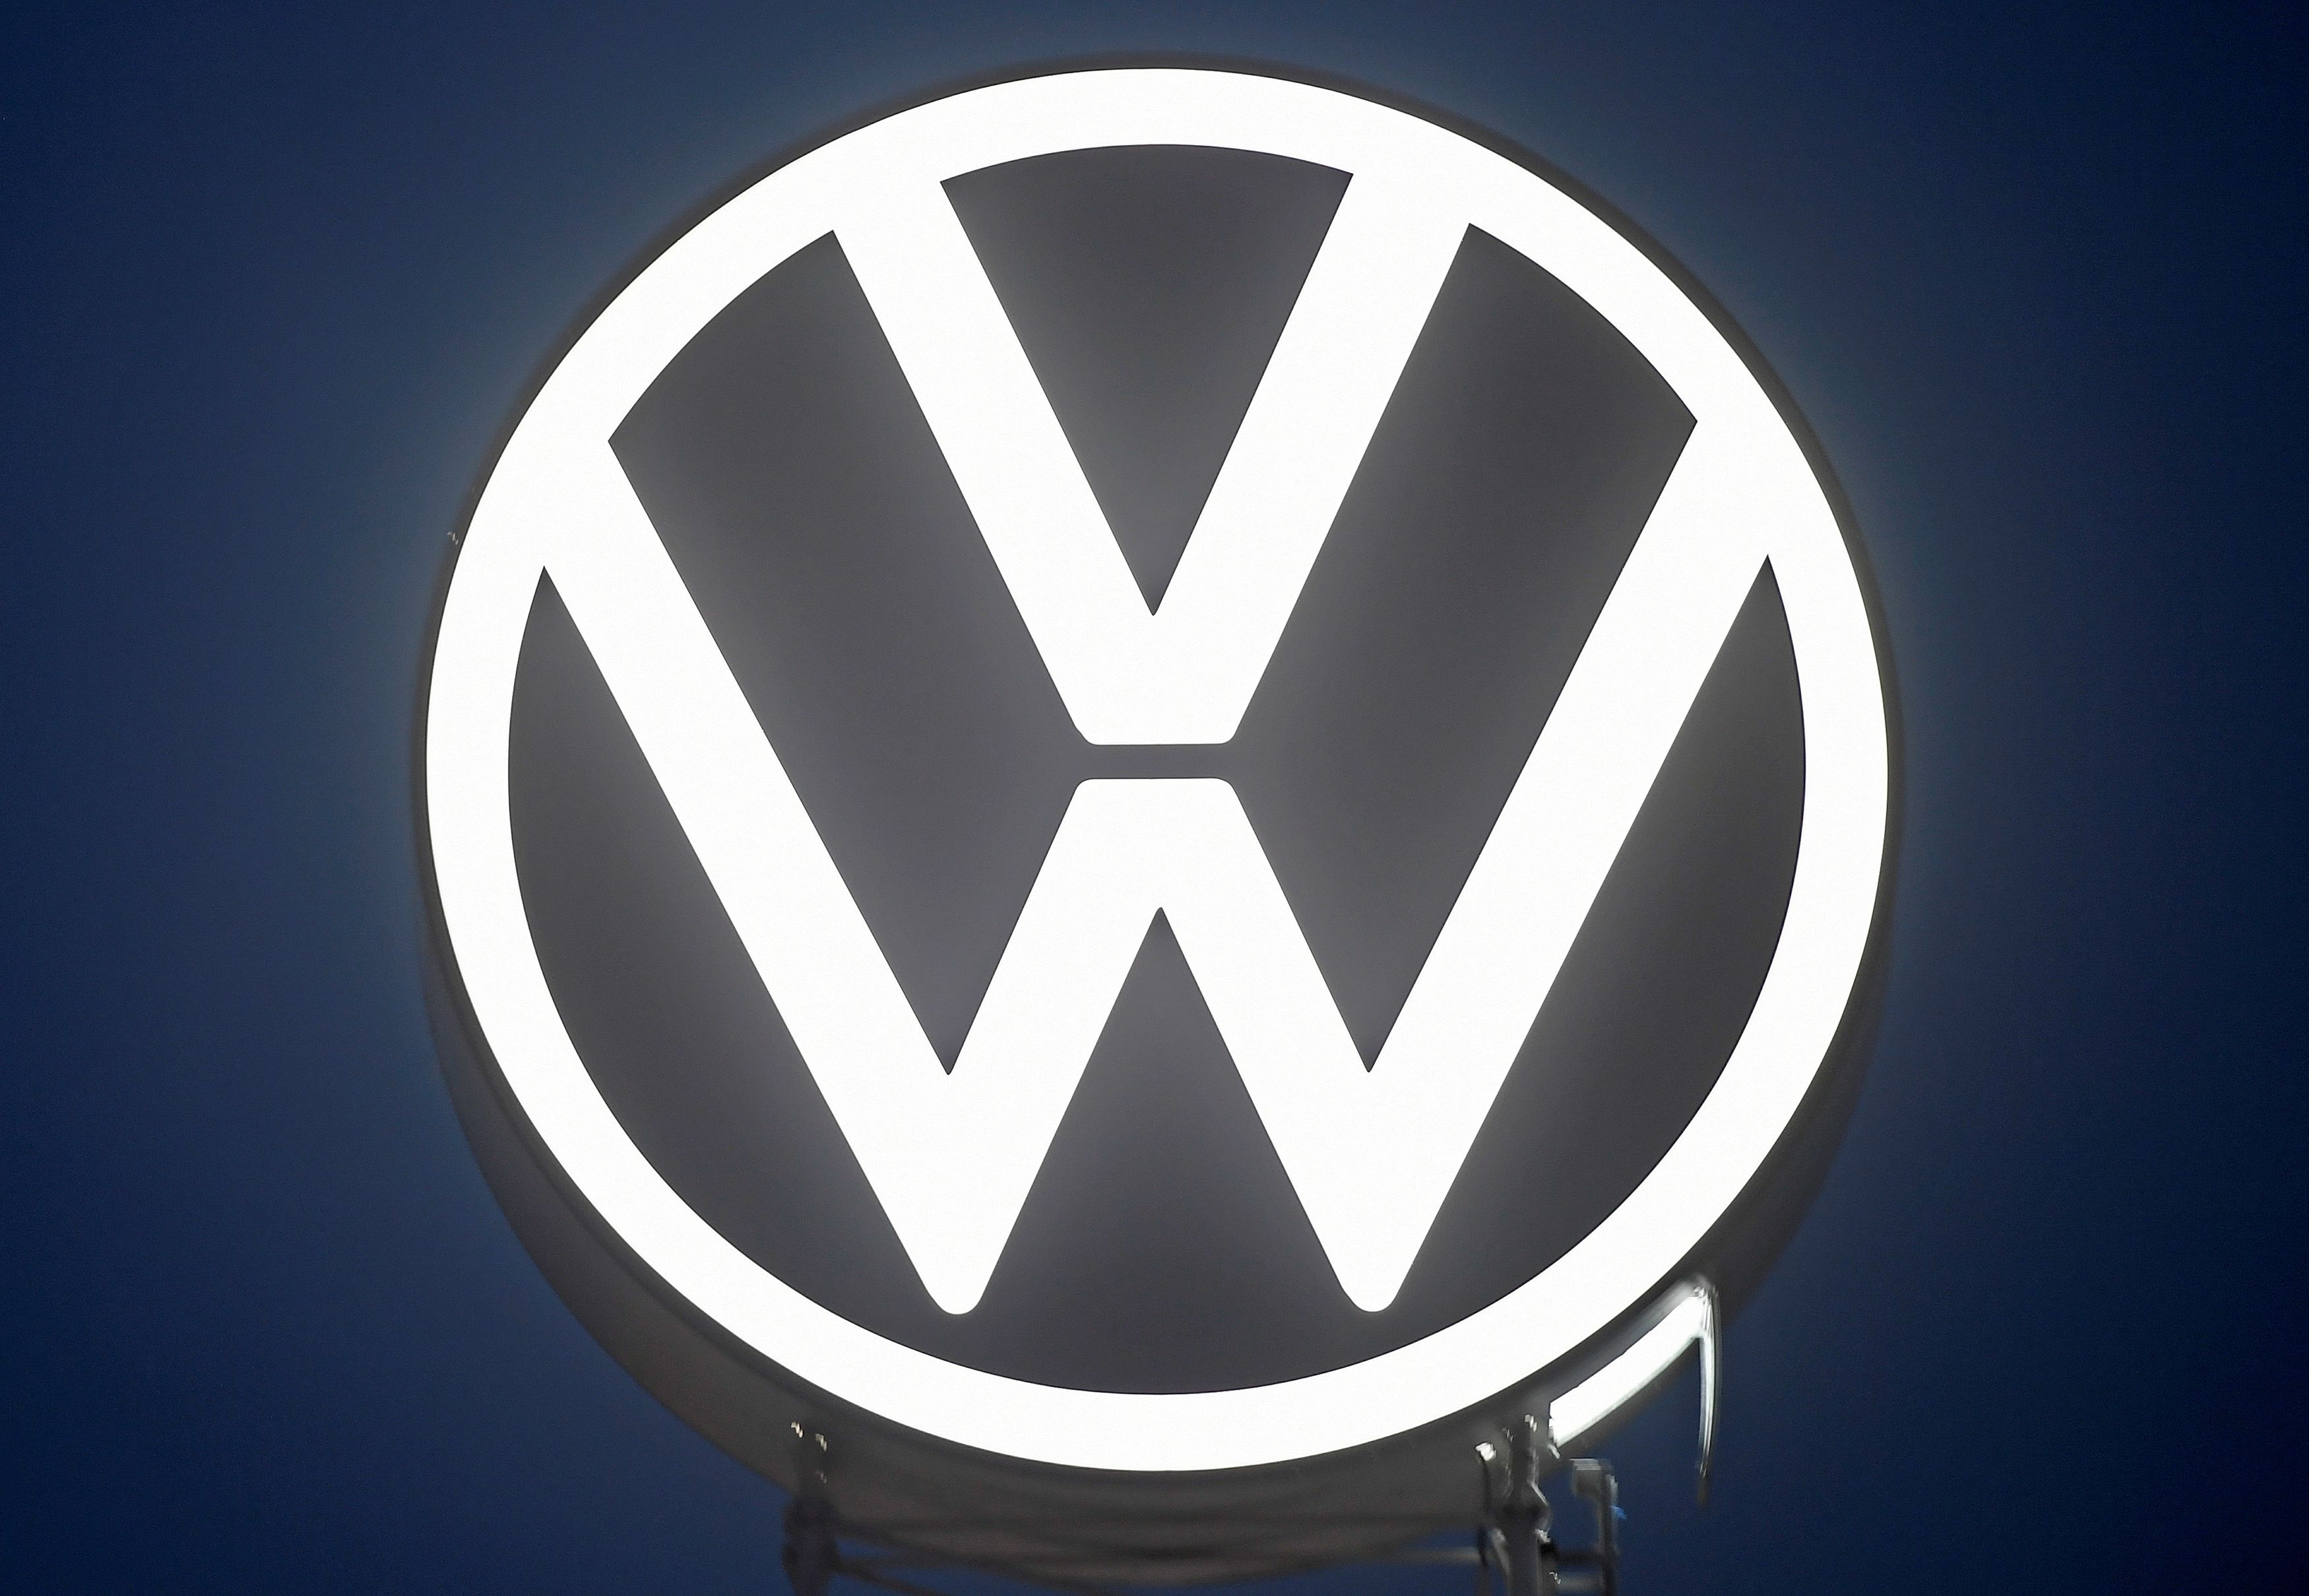 A new logo of German carmaker Volkswagen is unveiled at the VW headquarters in Wolfsburg, Germany September 9, 2019. REUTERS/Fabian Bimmer